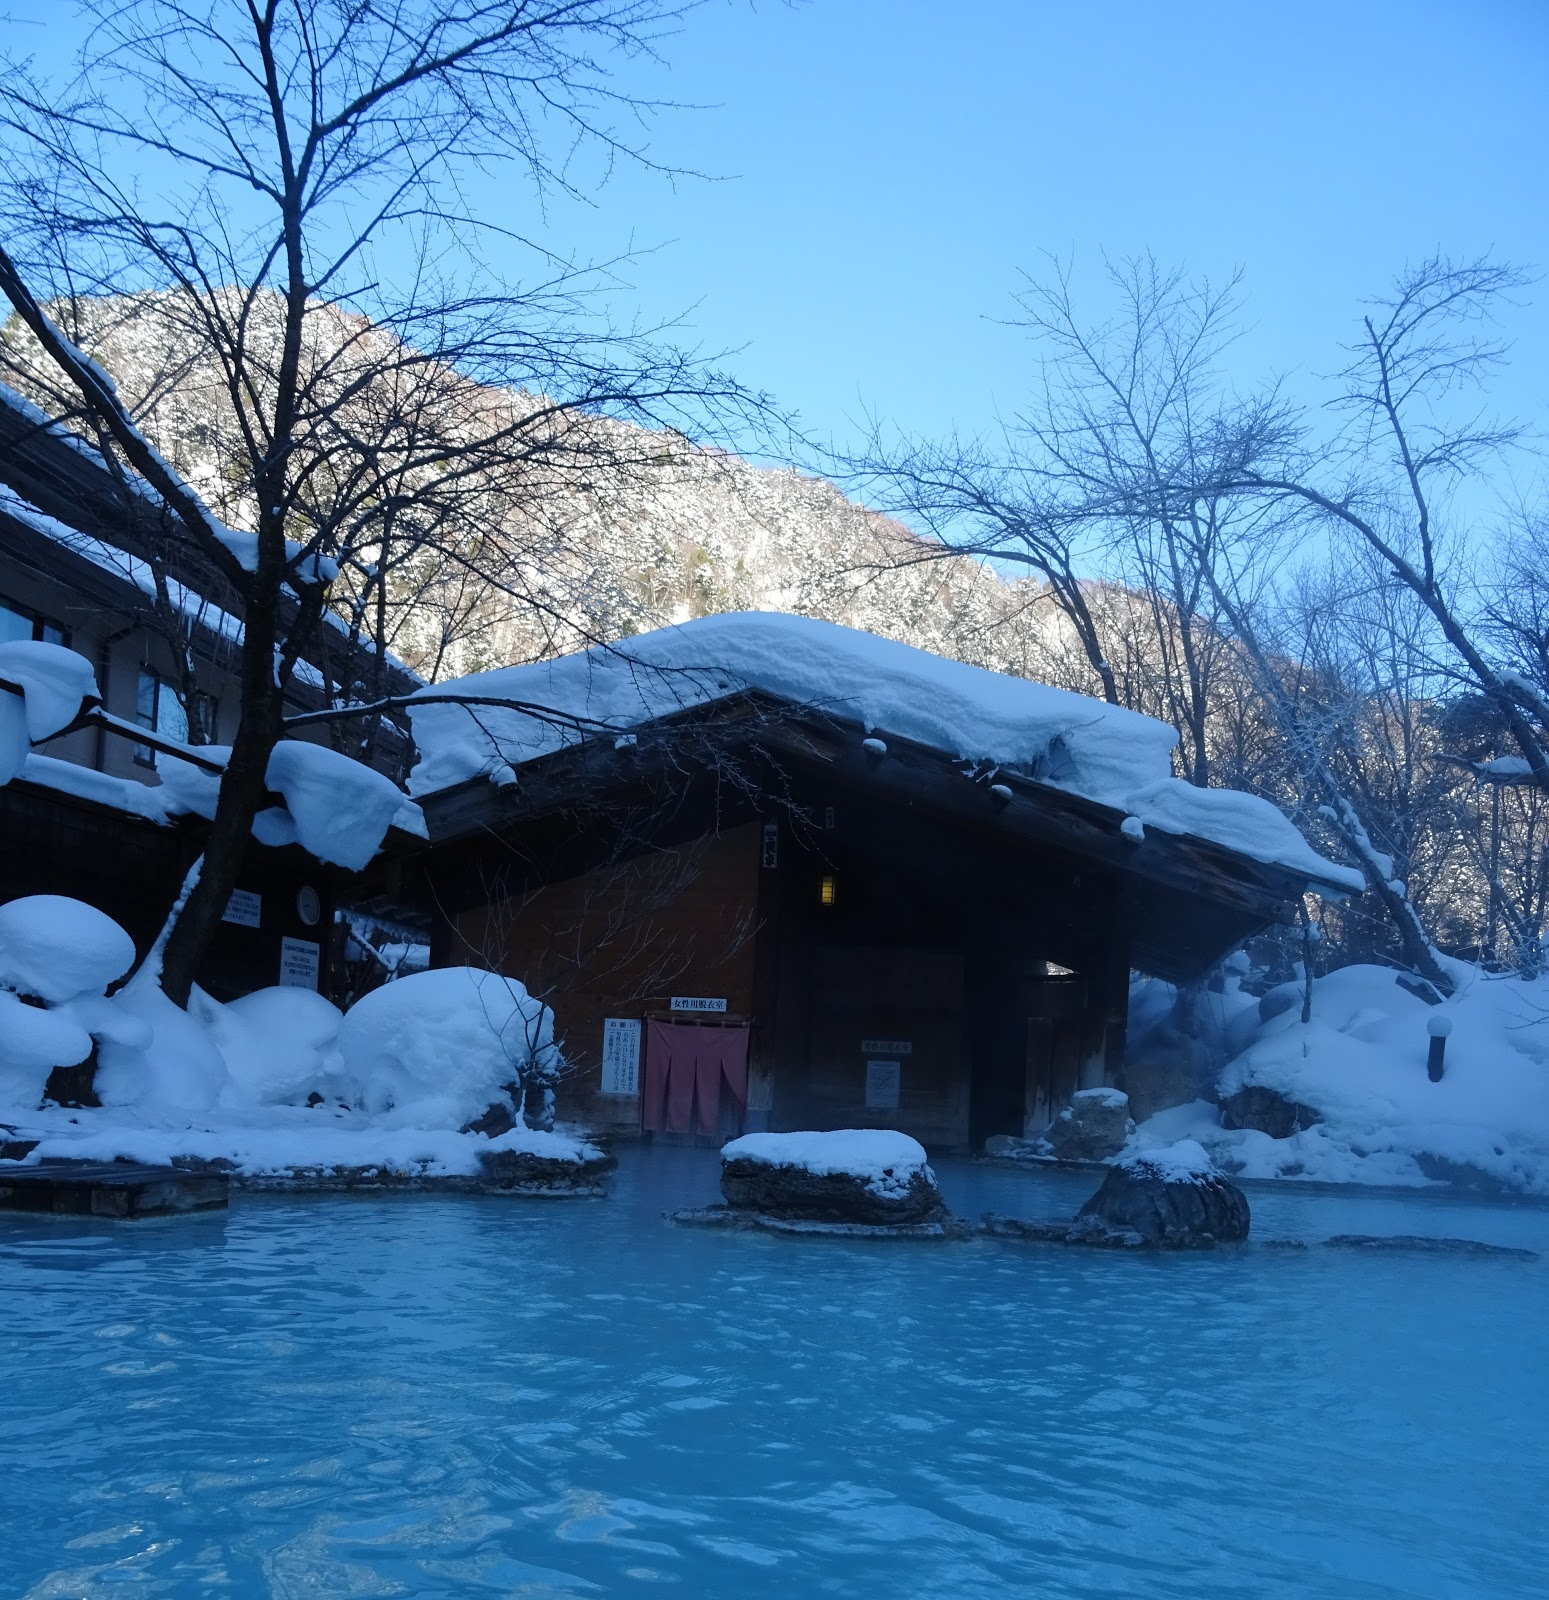 Onsen (Hot Spring) Addict in Japan